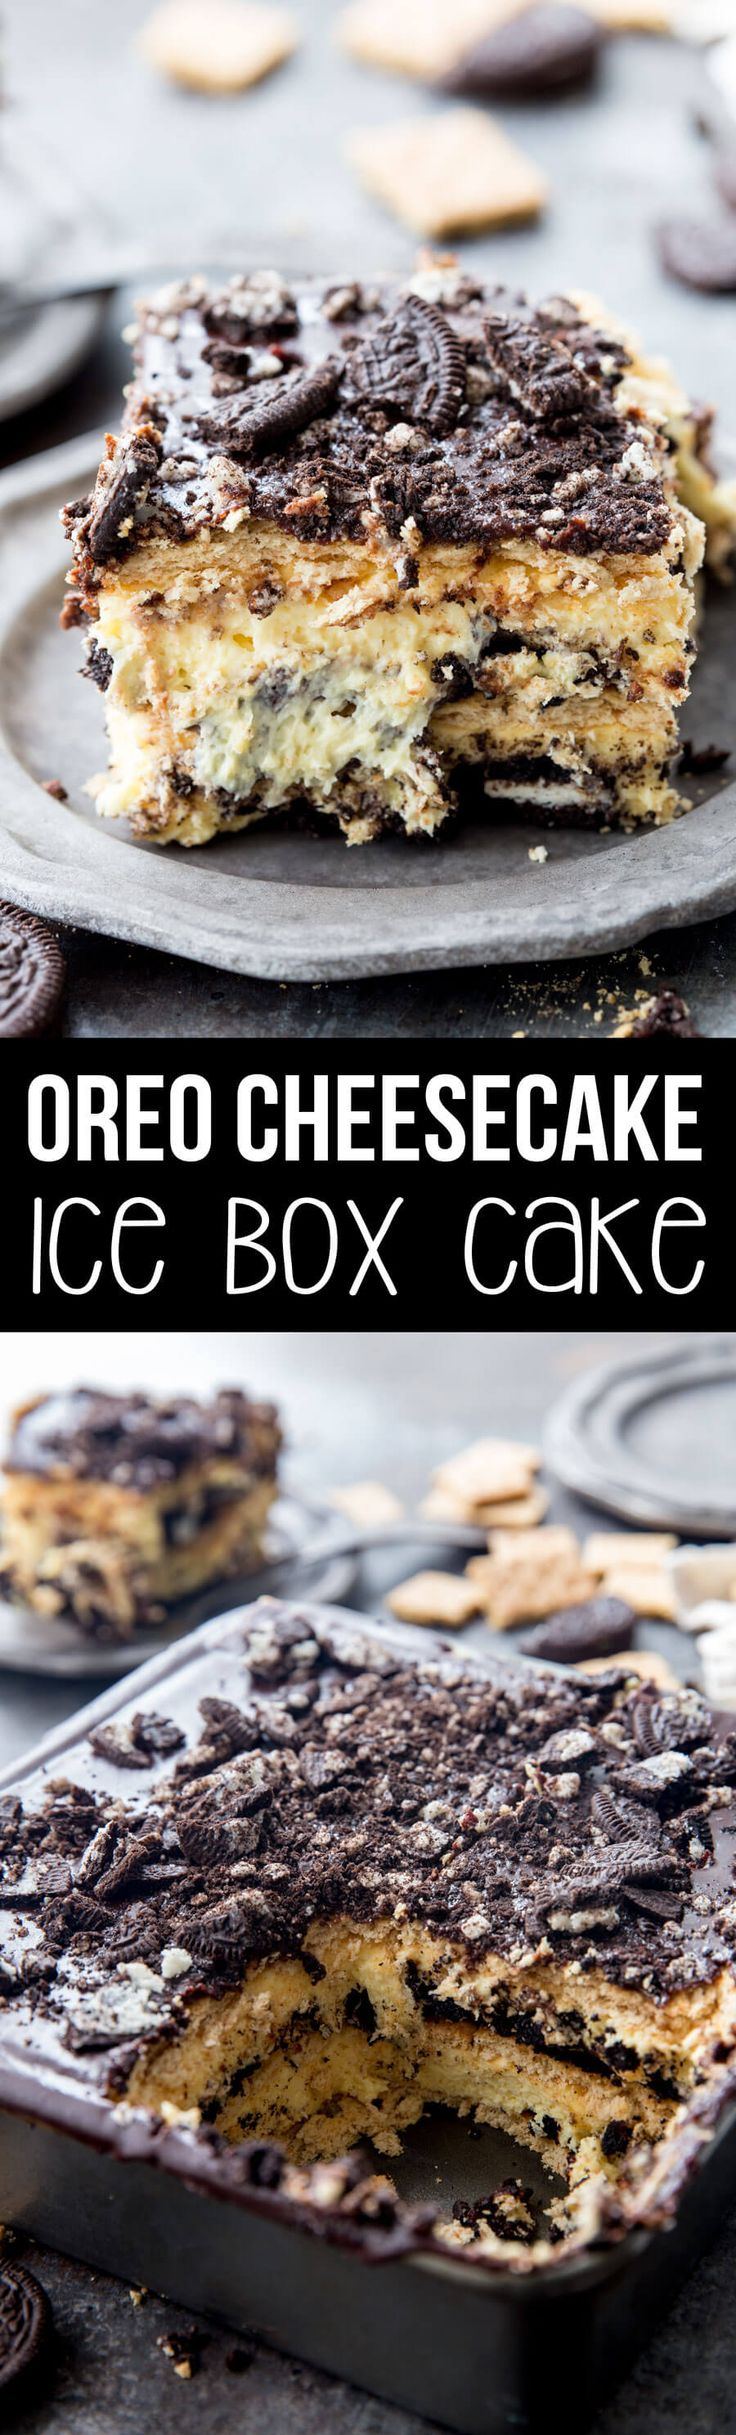 No Bake OREO Cheesecake Ice Box Cake: Decadent layers of OREO, cheesecake filling, and chocolate make this a no bake dessert perfect for your summer gatherings!